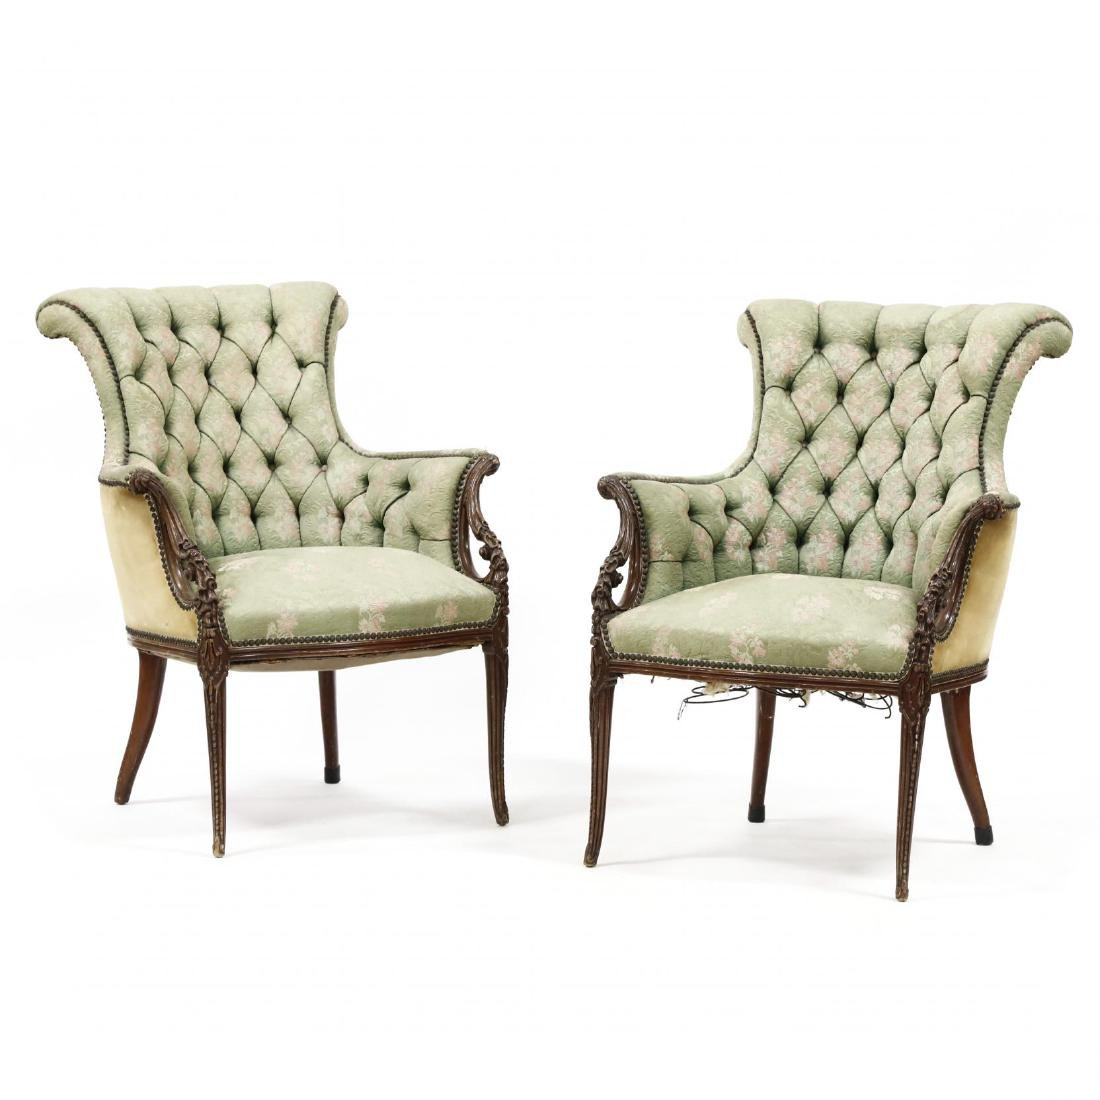 Pair of Edwardian Fireside Chairs